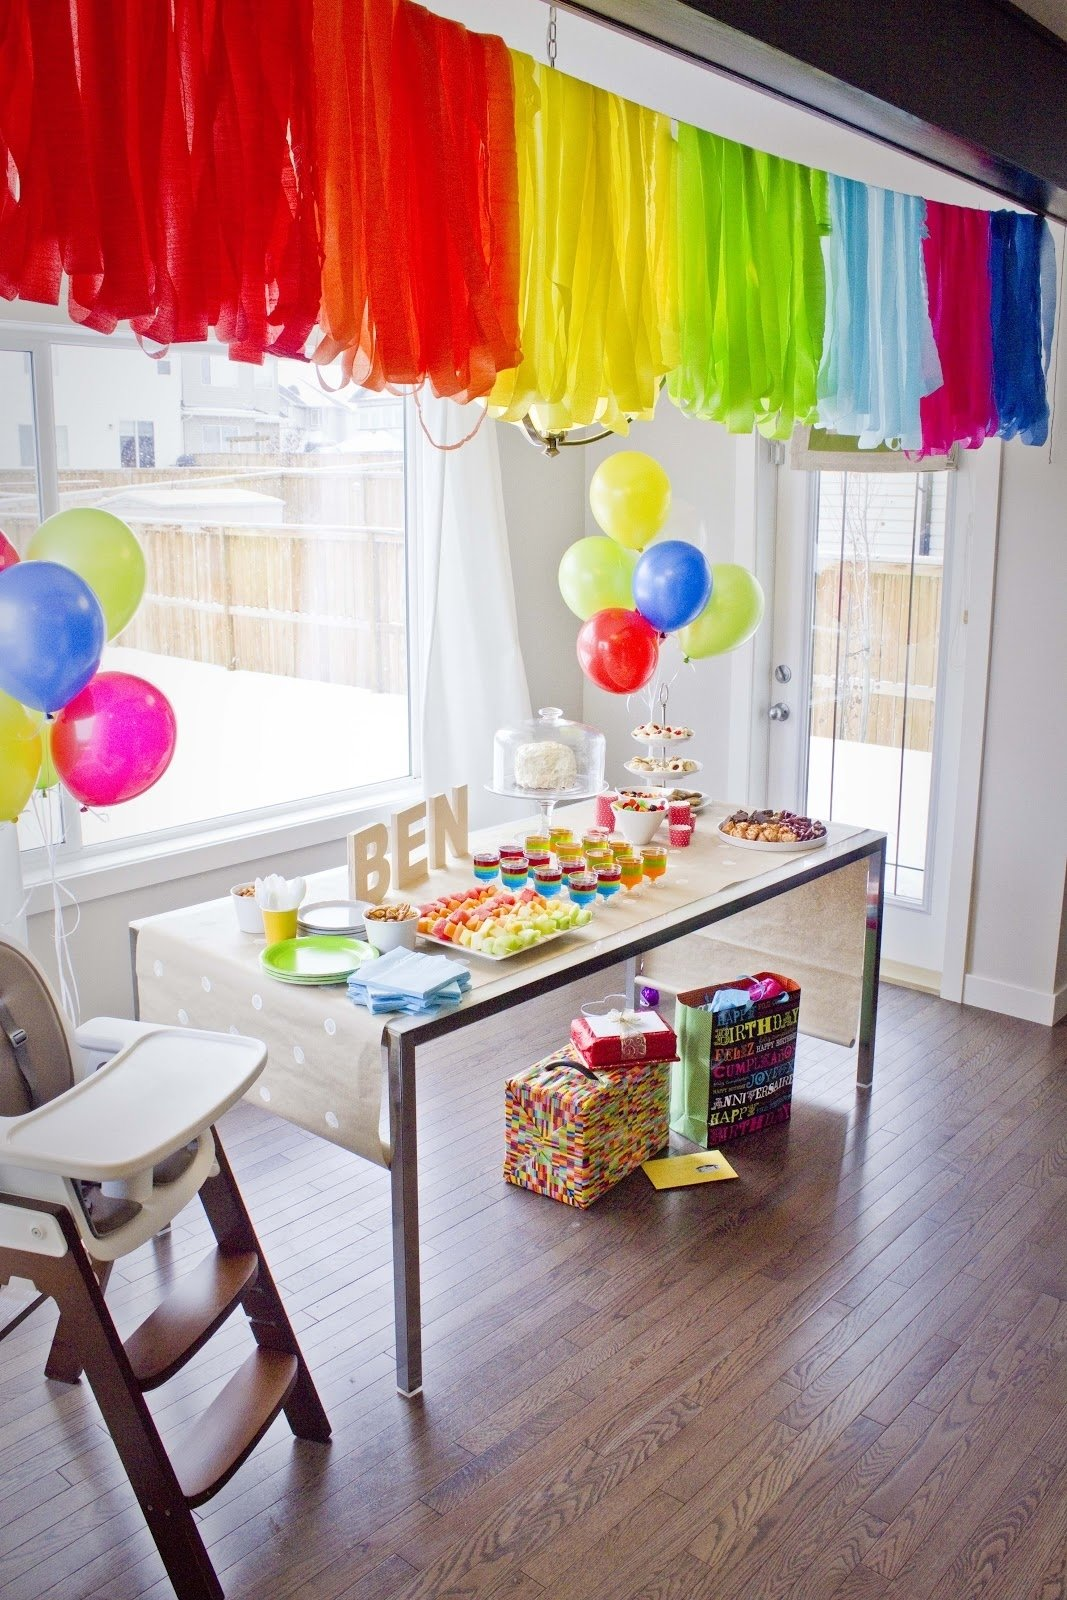 10 Beautiful Simple First Birthday Party Ideas corner orchid bens first birthday party 2021